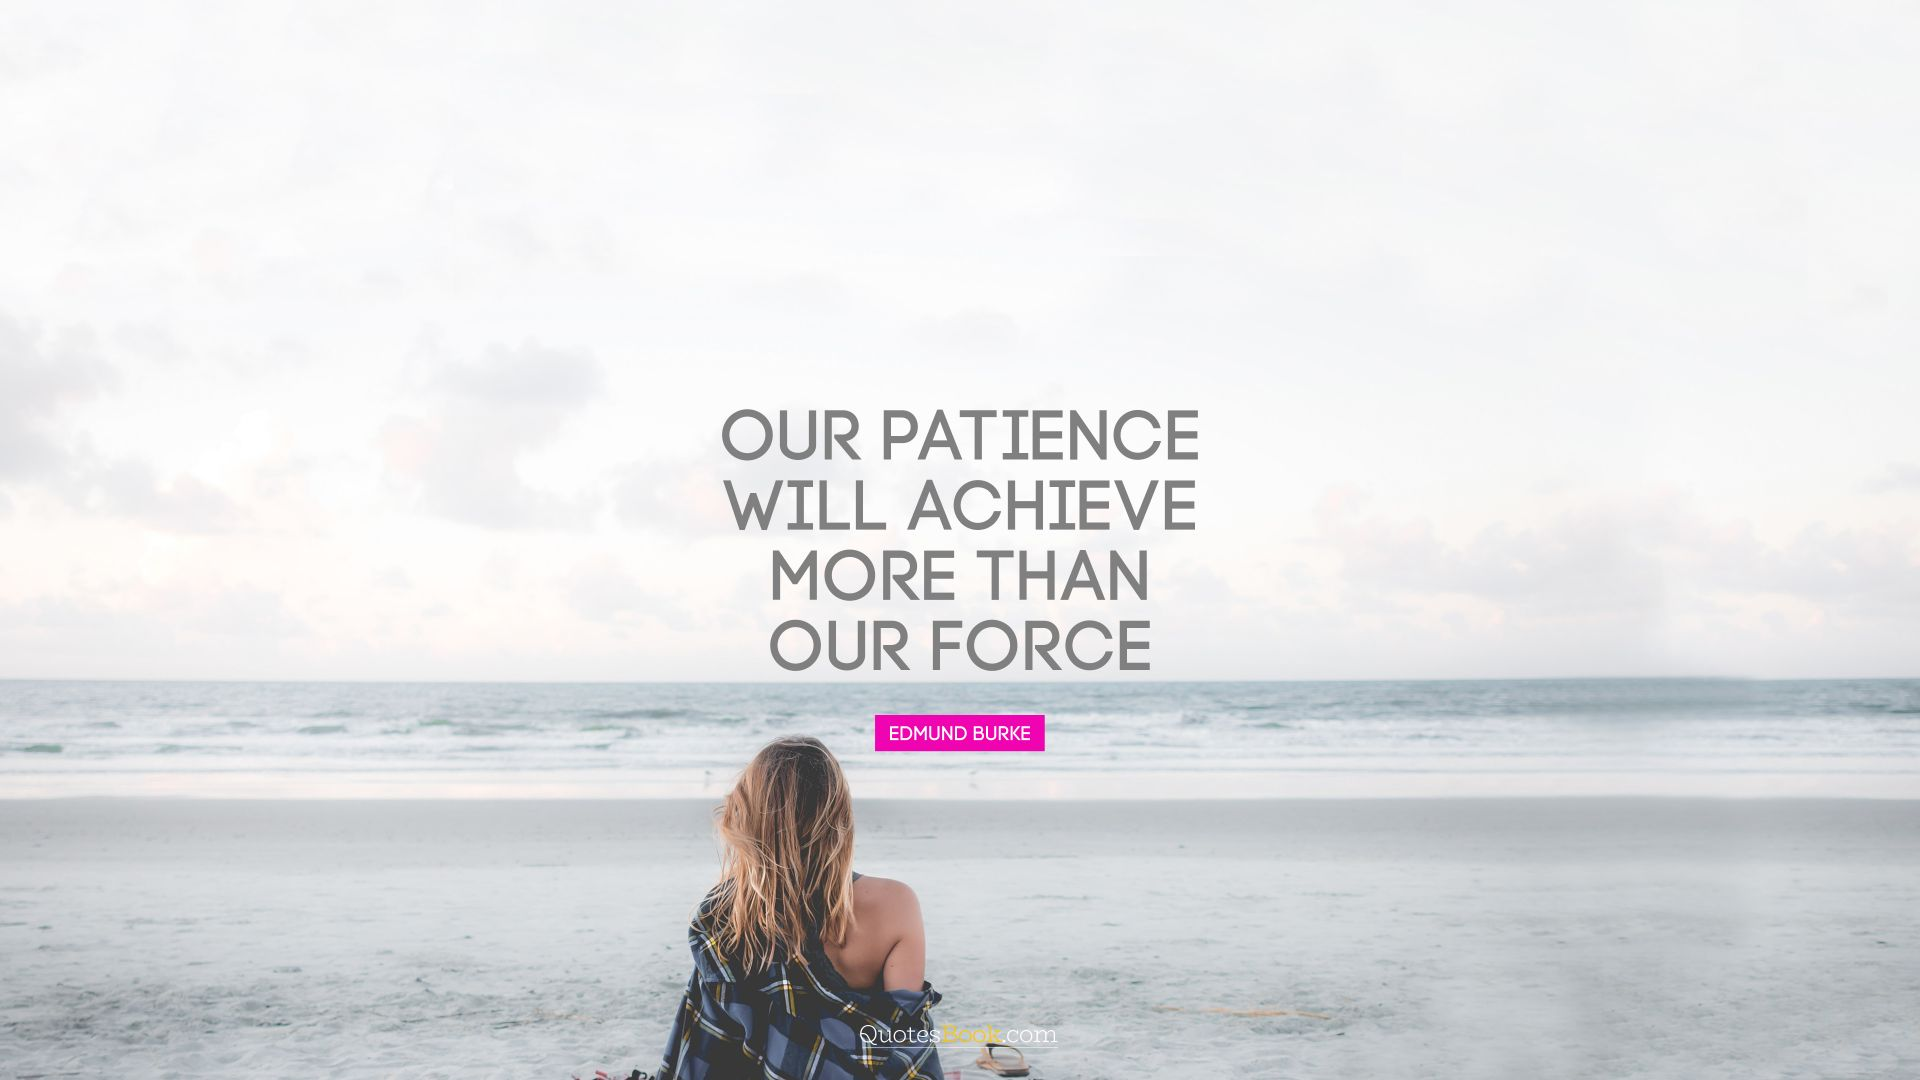 Our patience will achieve more than our force. - Quote by Edmund Burke